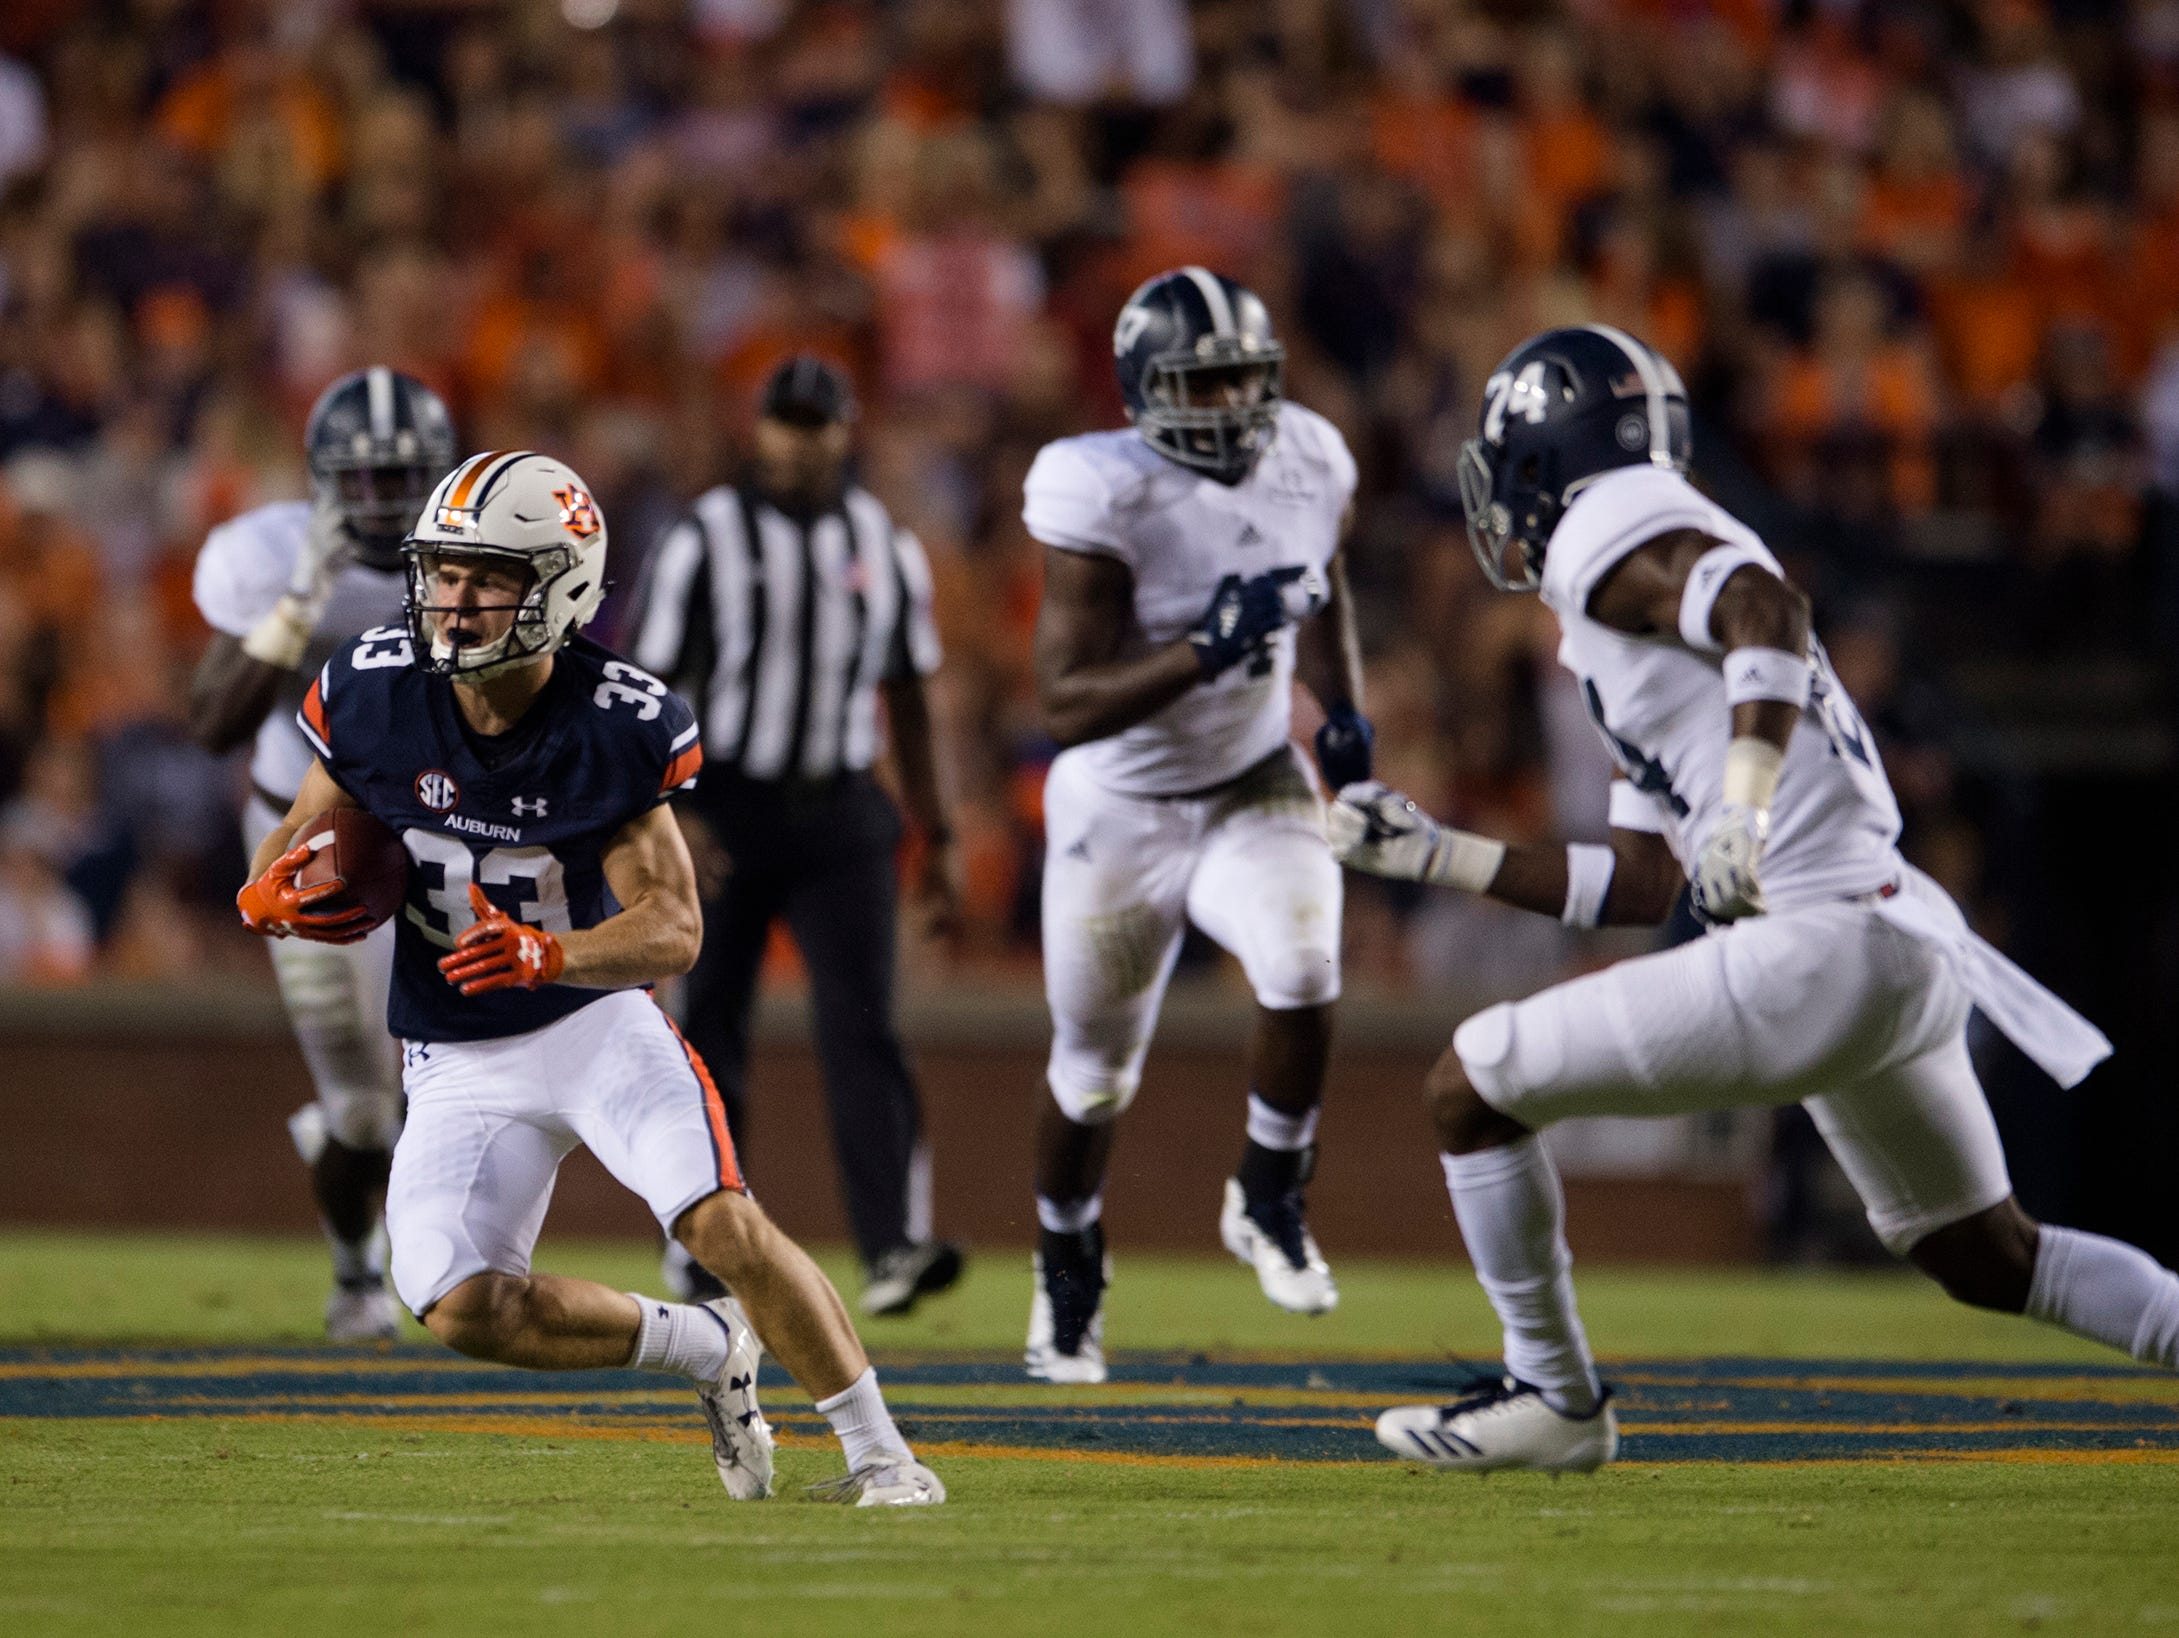 Auburn wide receiver Will Hastings (33) runs downfield during the NCAA football game between Auburn vs. Georgia Southern on Saturday, Sept. 2, 2017, at Jordan Hare Stadium in Auburn, Ala.